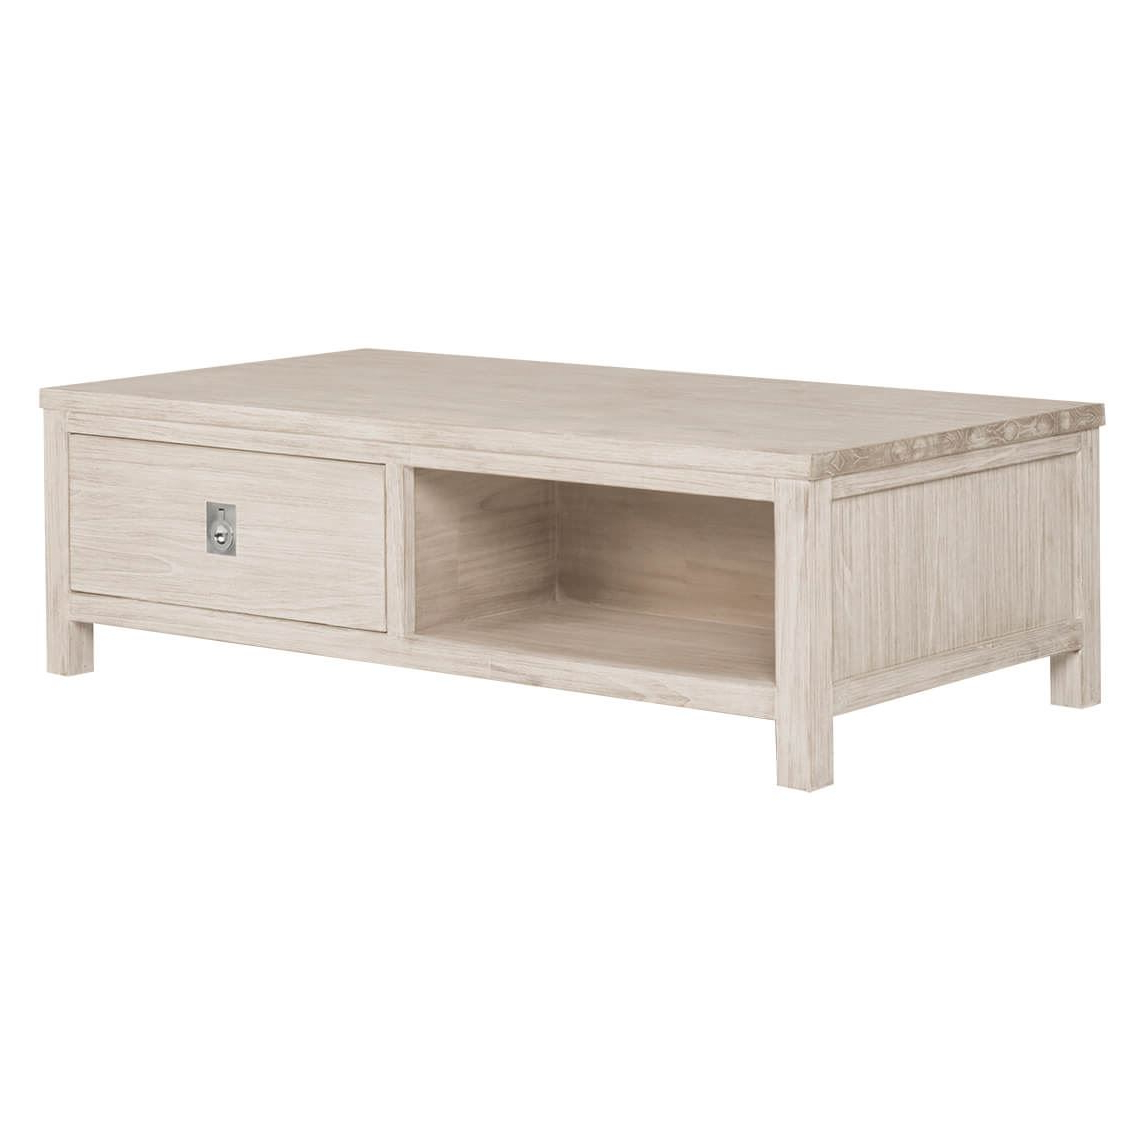 Preferred White Wash 2 Drawer/1 Door Coffee Tables Intended For Cancun Coffee (Gallery 9 of 20)